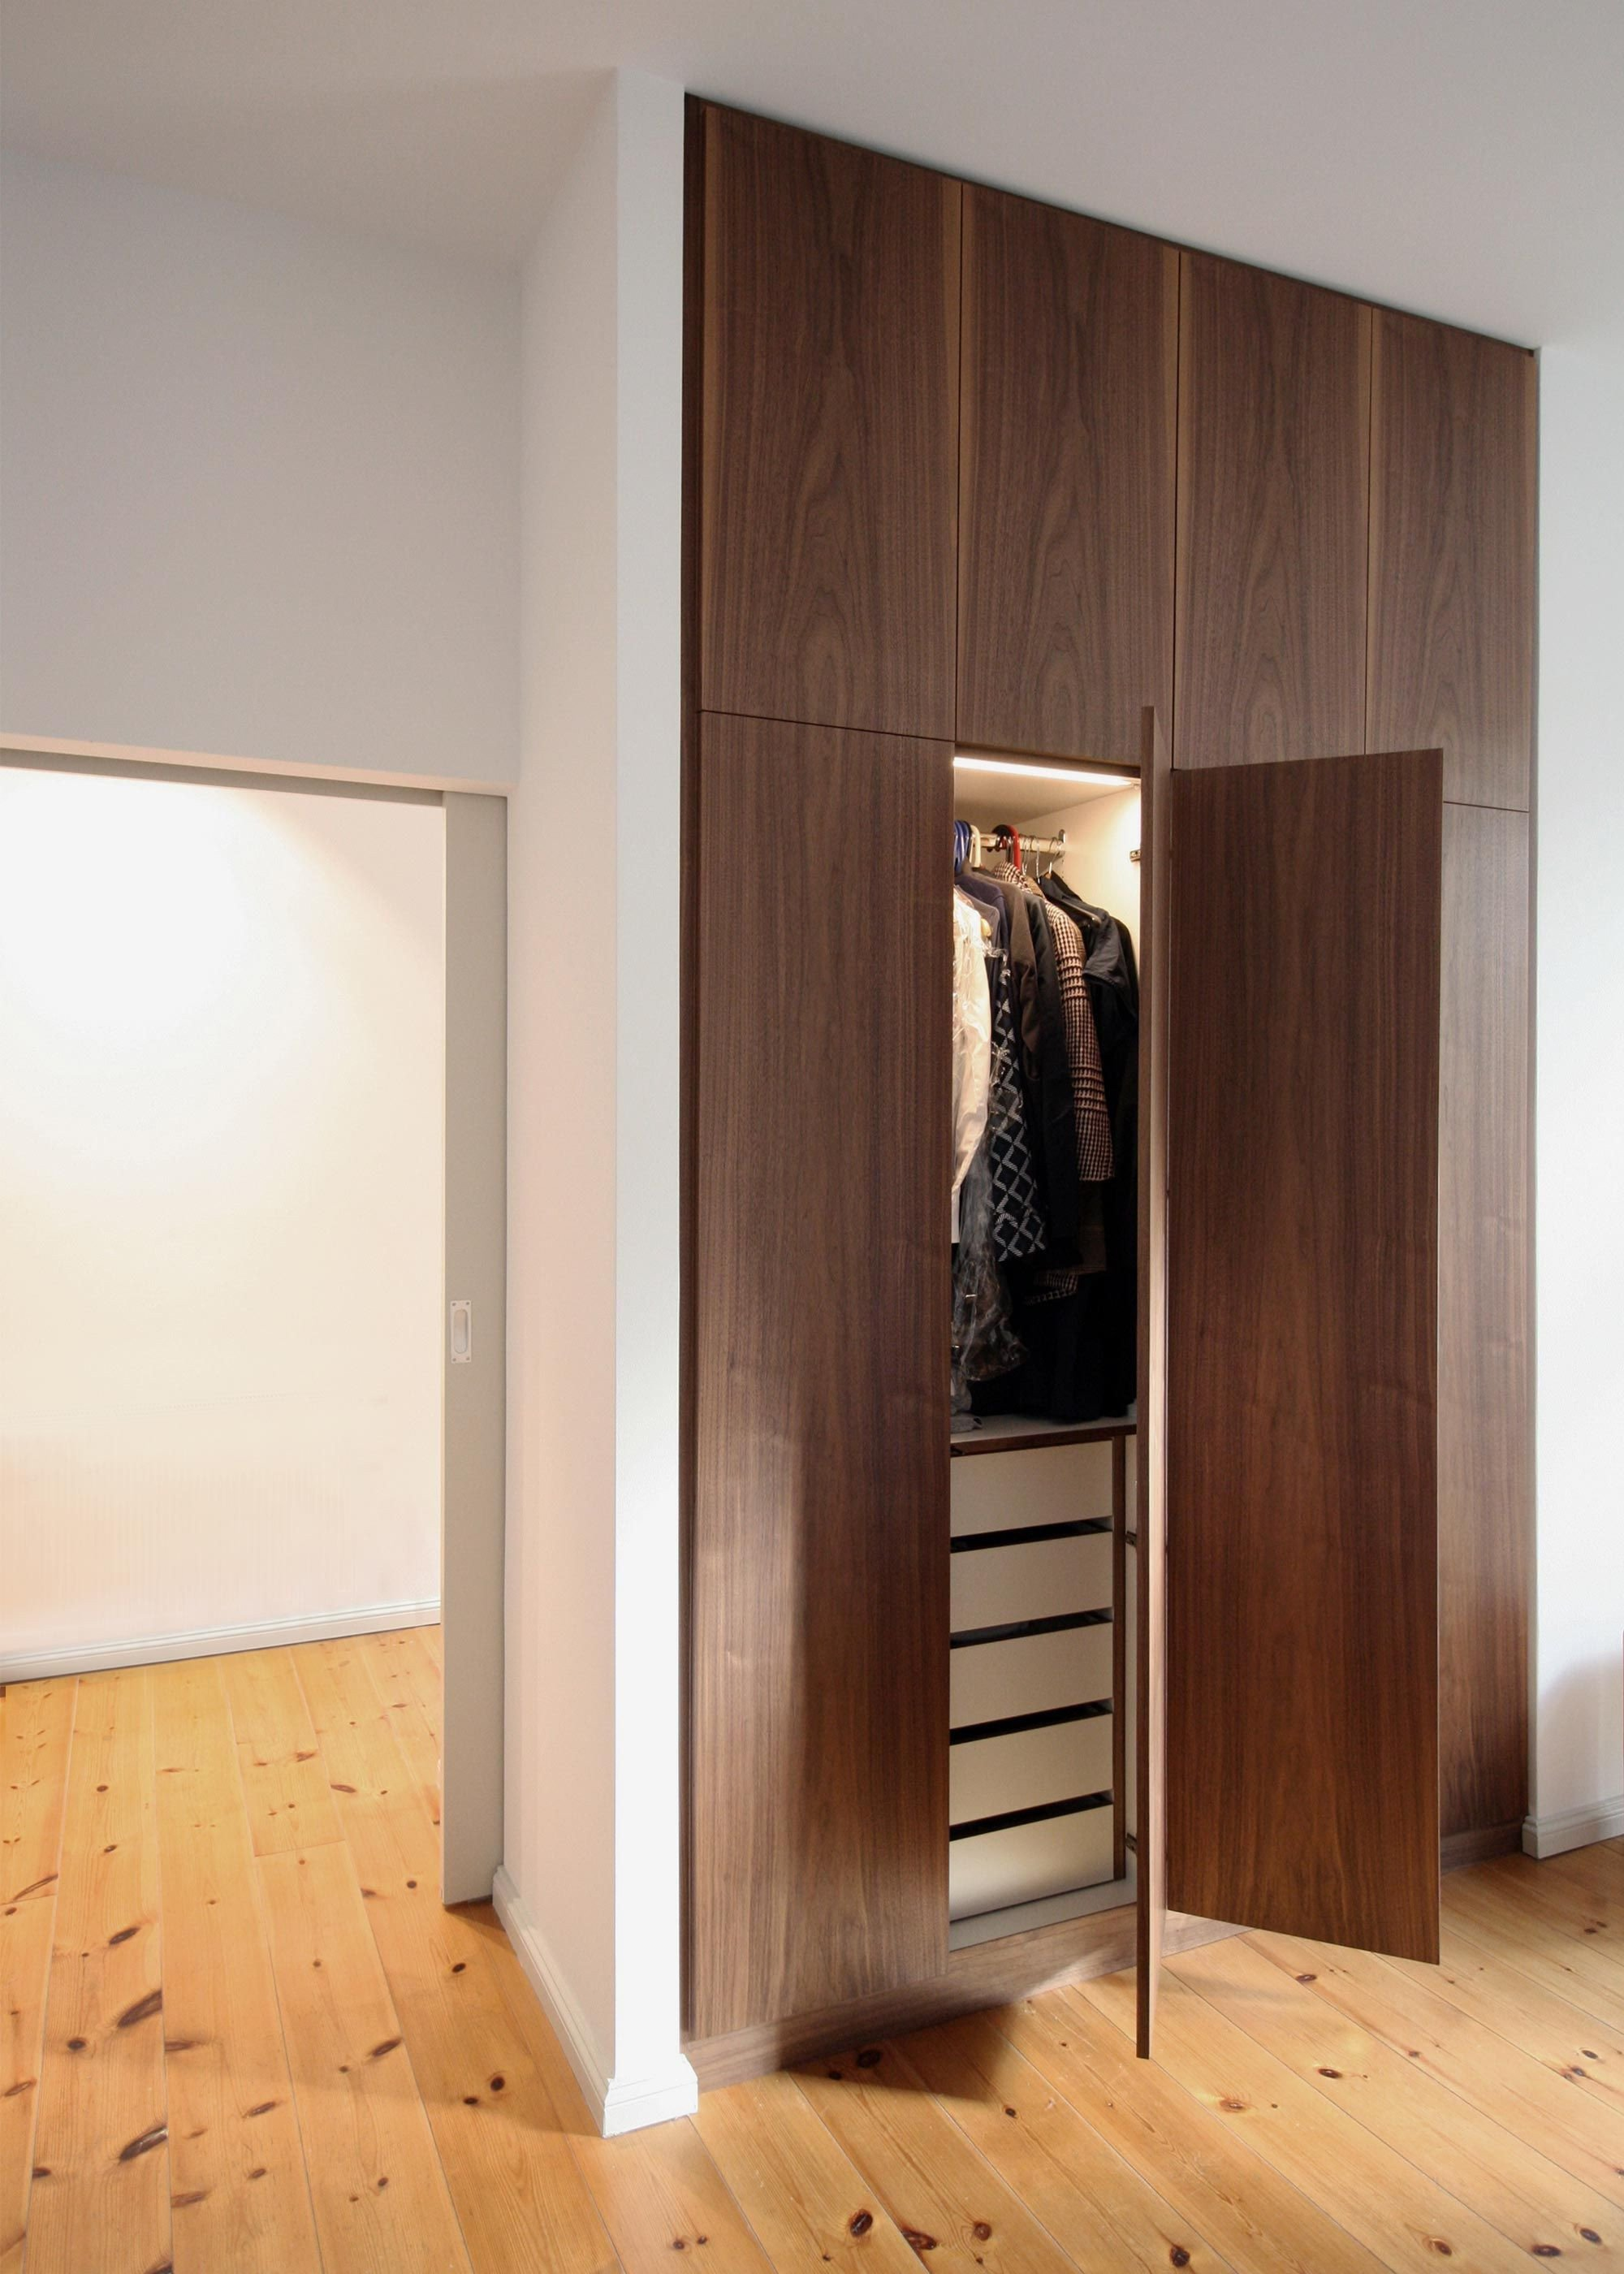 Bedroom Wall Units with Drawers Inspirational Built In Wardrobe Apartment J